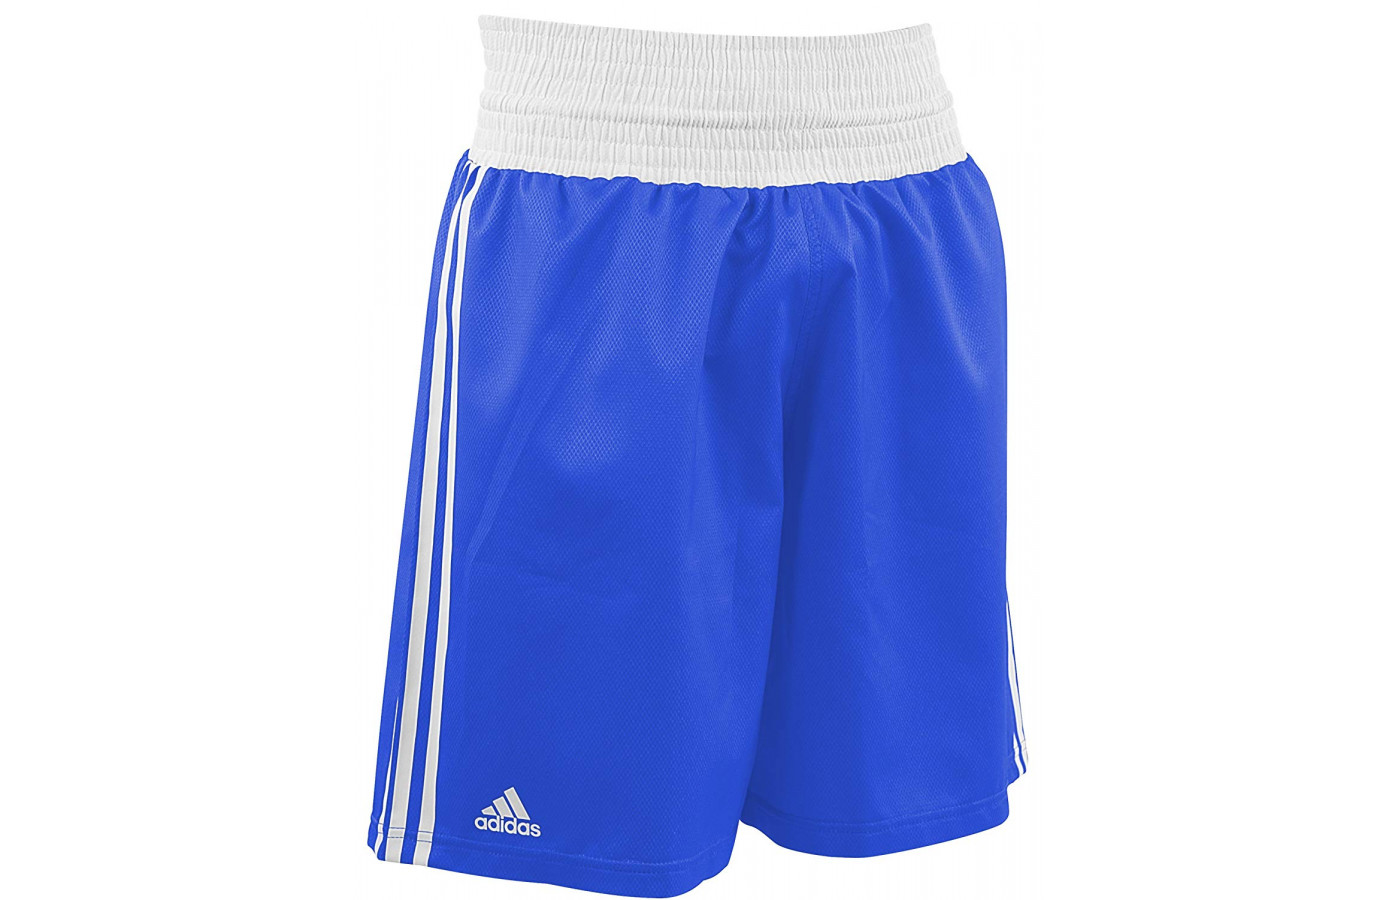 adidas boxing trunks blue and white